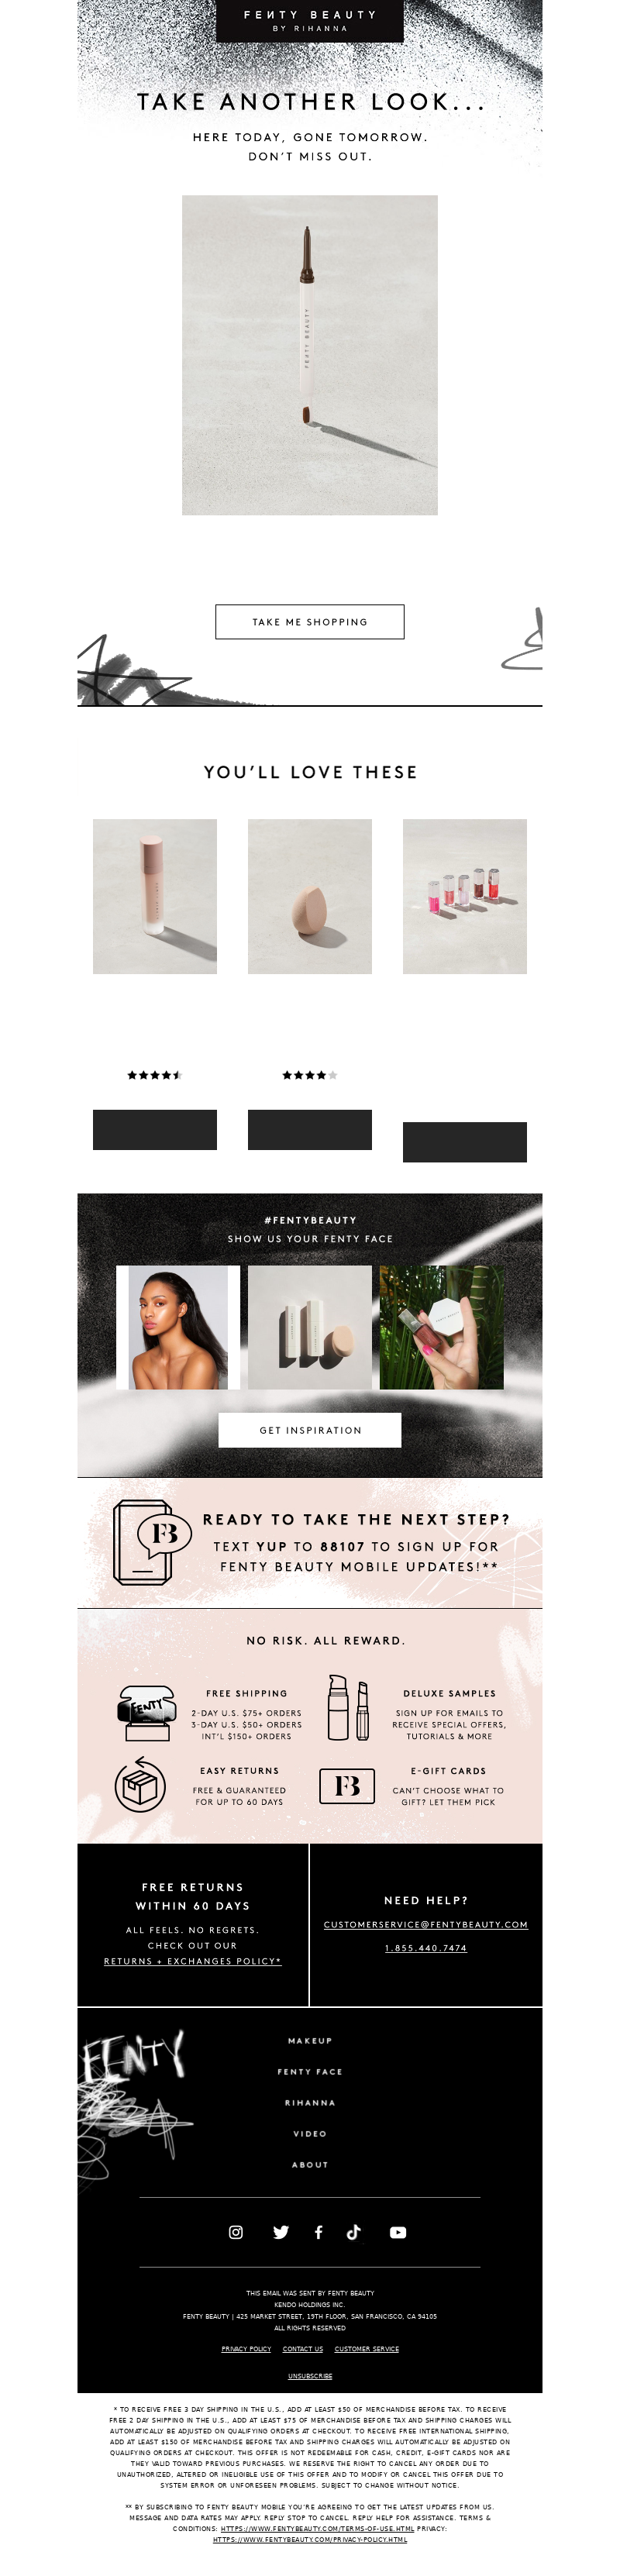 Fenty Beauty - Take another look...